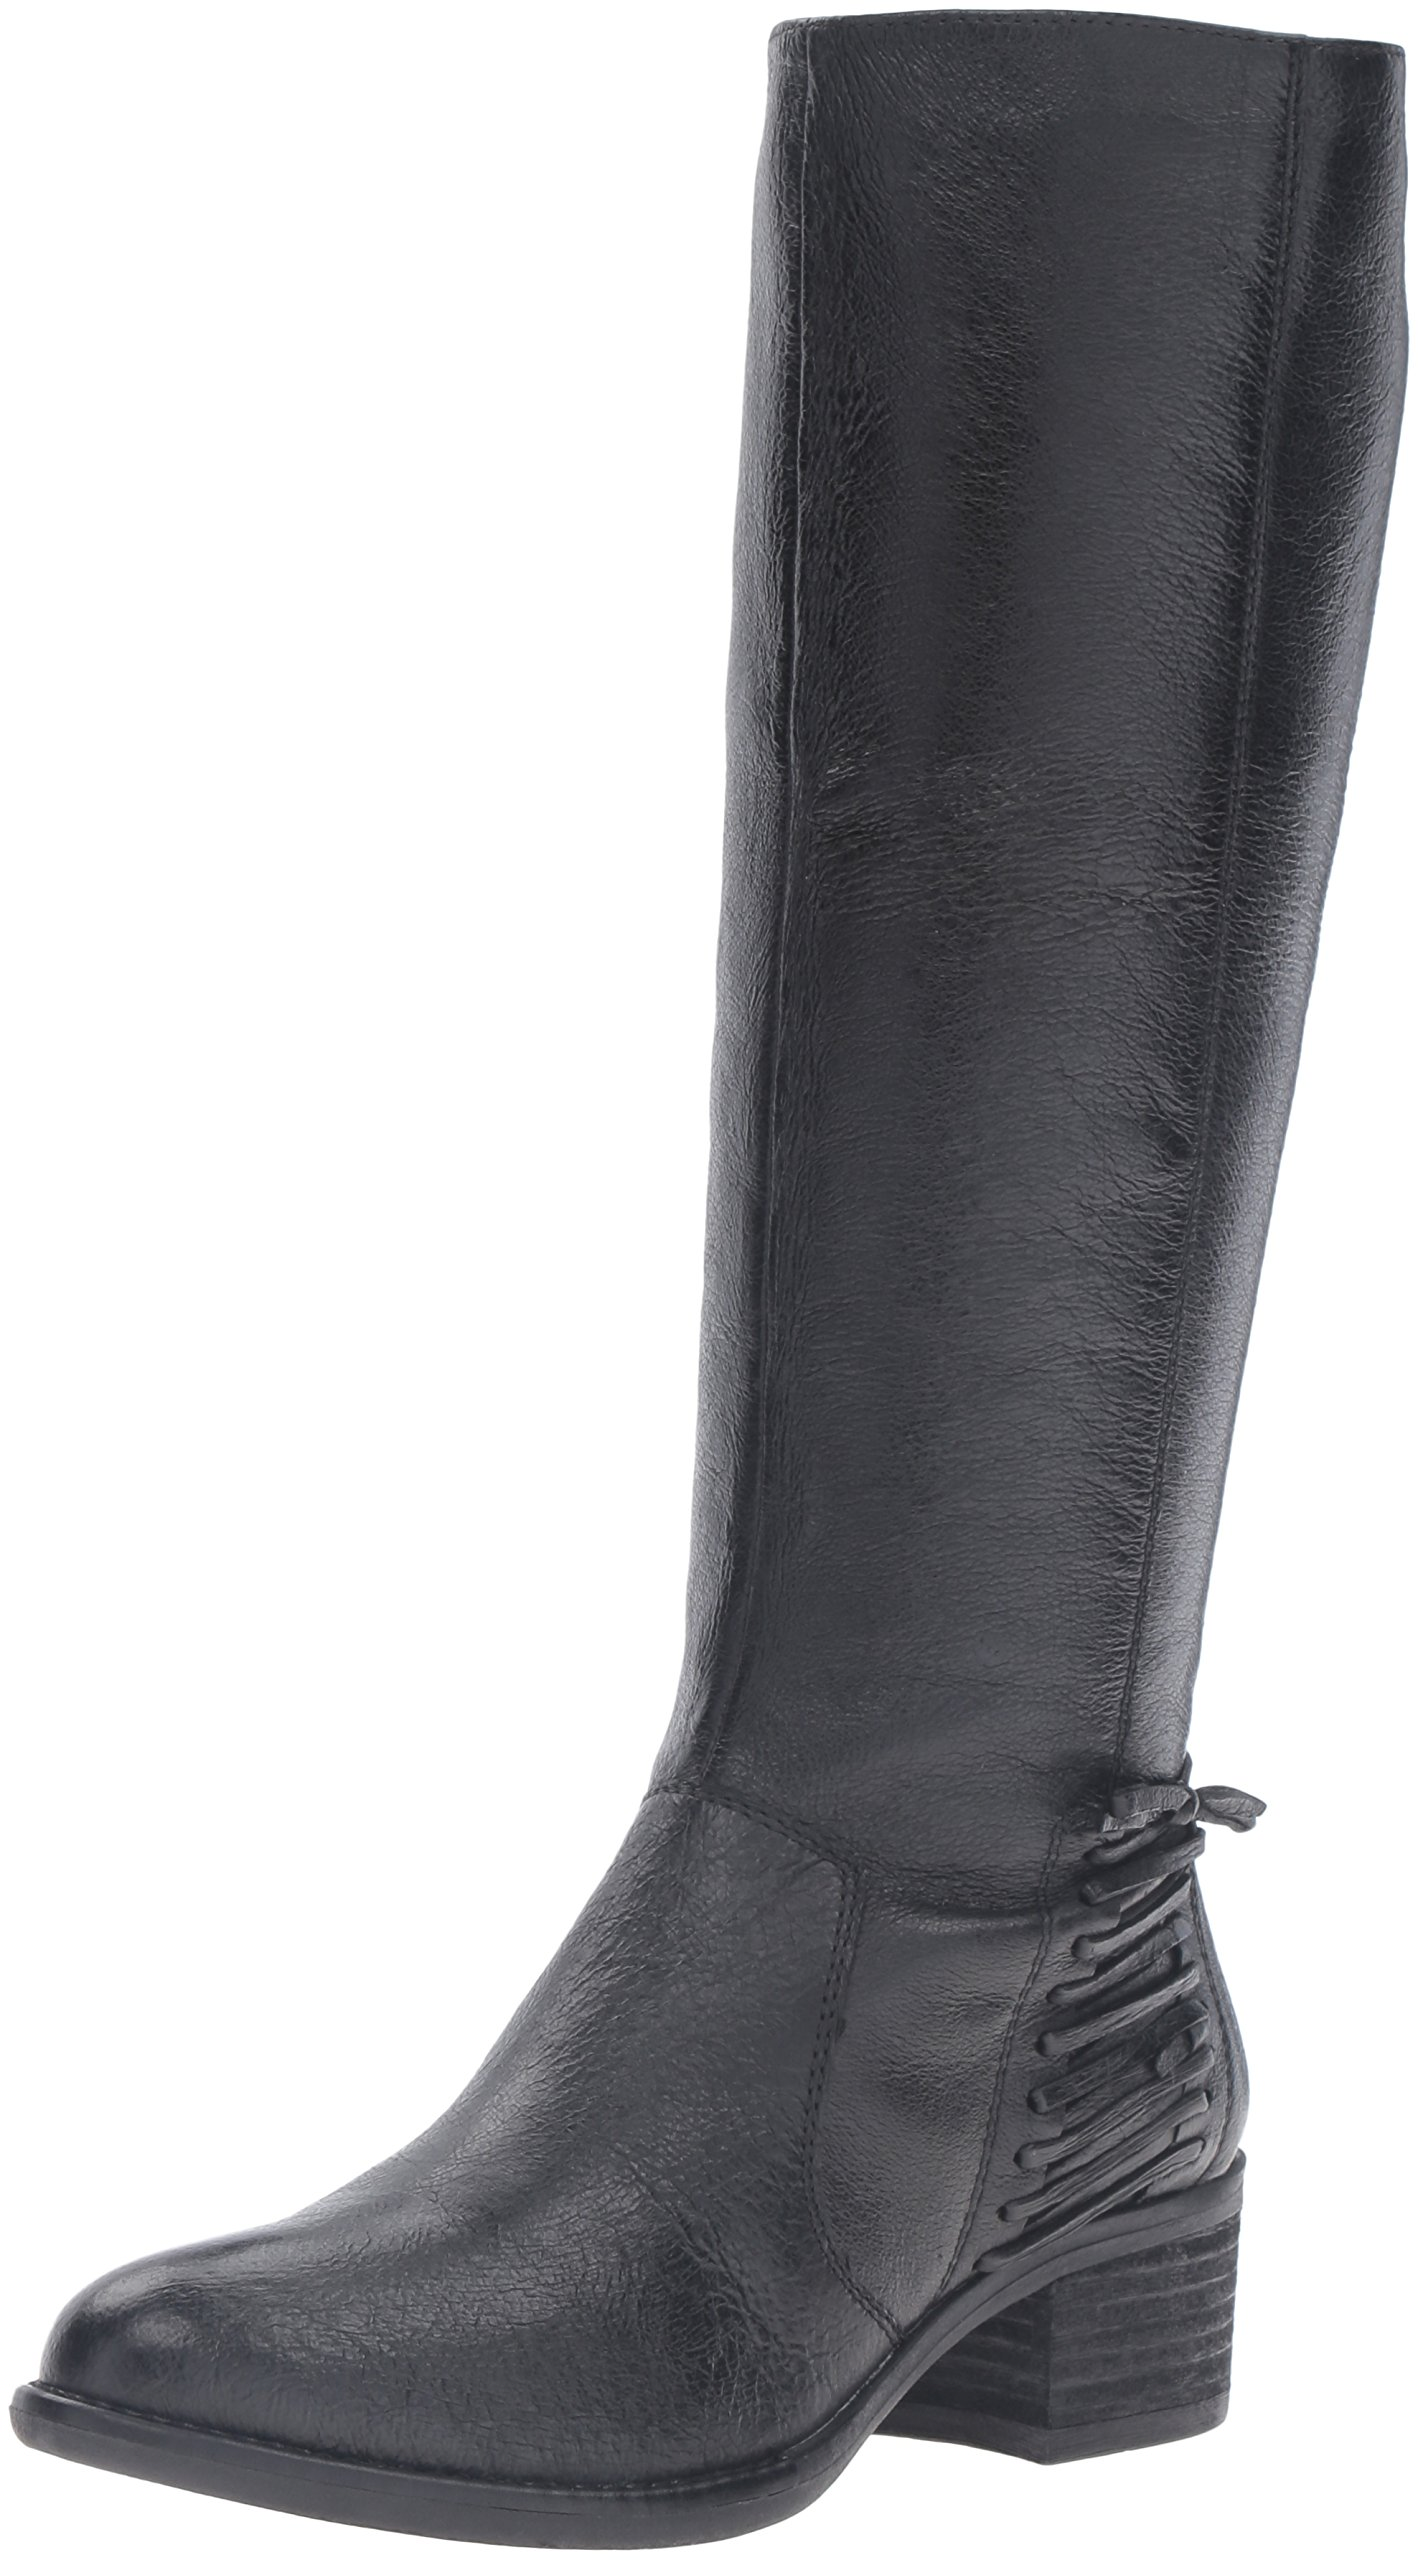 Steve Madden Women's Lonnny Riding Boot, Black Leather, 7.5 M US